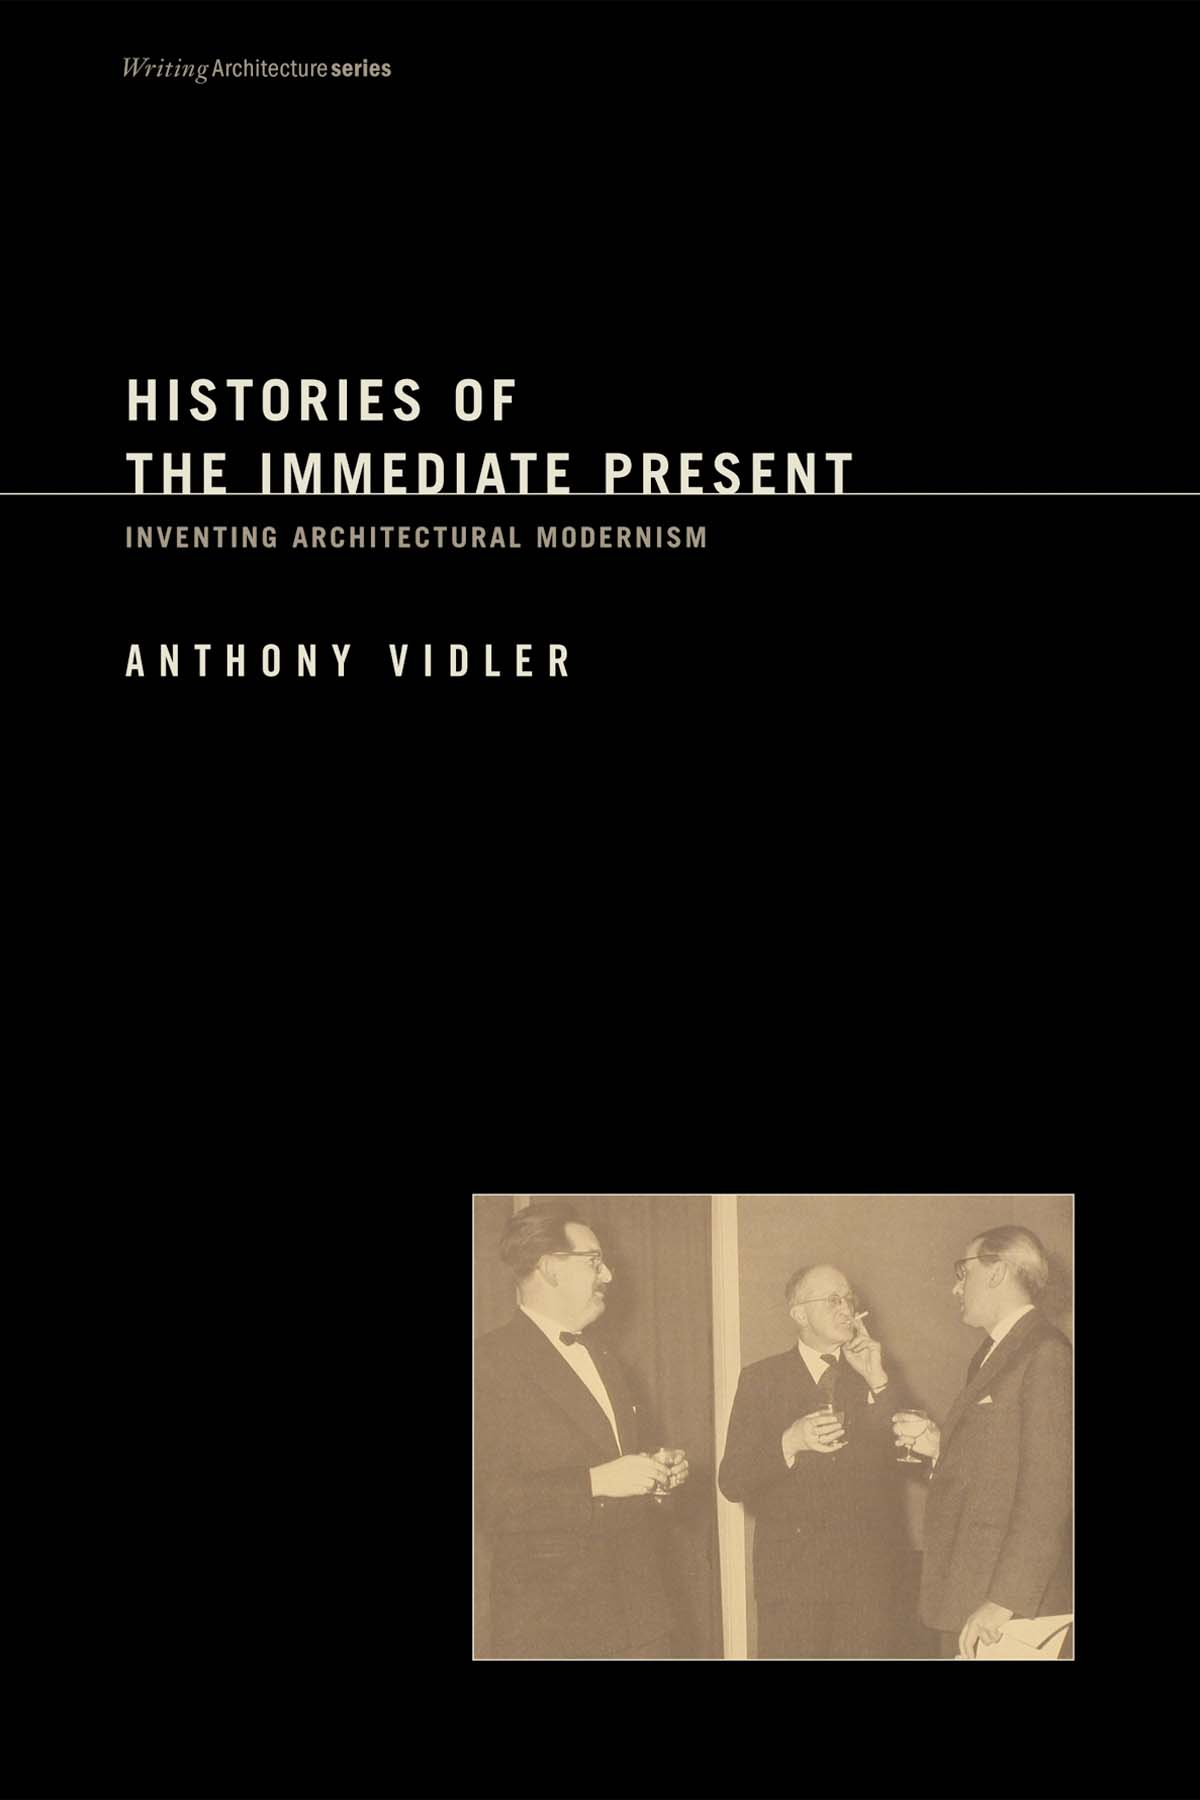 "Histories of the Immediate Present: Inventing Architectural Modernism  by Anthony Vidler Foreword by Peter Eisenman  Architecture, at least since the beginning of the 20th century, has suspended historical references in favor of universalized abstraction. In the decades after the Second World War, when architectural historians began to assess the legacy of the avant-gardes in order to construct a coherent narrative of modernism's development, they were inevitably influenced by contemporary concerns. In  Histories of the Immediate Present , Anthony Vidler looks at the historical approaches of Emil Kaufmann, Colin Rowe, Reyner Banham, and Manfredo Tafuri, and the specific versions of architectural modernism advanced by their historical narratives. He shows that the modernism conceived by Kaufmann was, like the late Enlightenment projects he revered, one of pure, geometrical forms and elemental composition; that Rowe saw mannerist ambiguity and complexity in contemporary design; Banham's modernism took its cue from the aspirations of the futurists; and the ""Renaissance modernism"" of Tafuri found its source in the division between the technical experimentation of Brunelleschi and the cultural nostalgia of Alberti. Vidler's investigation demonstrates the inevitable collusion between history and design that pervades all modern architectural discourse – and has given rise to some of the most interesting architectual experiments of the postwar period."